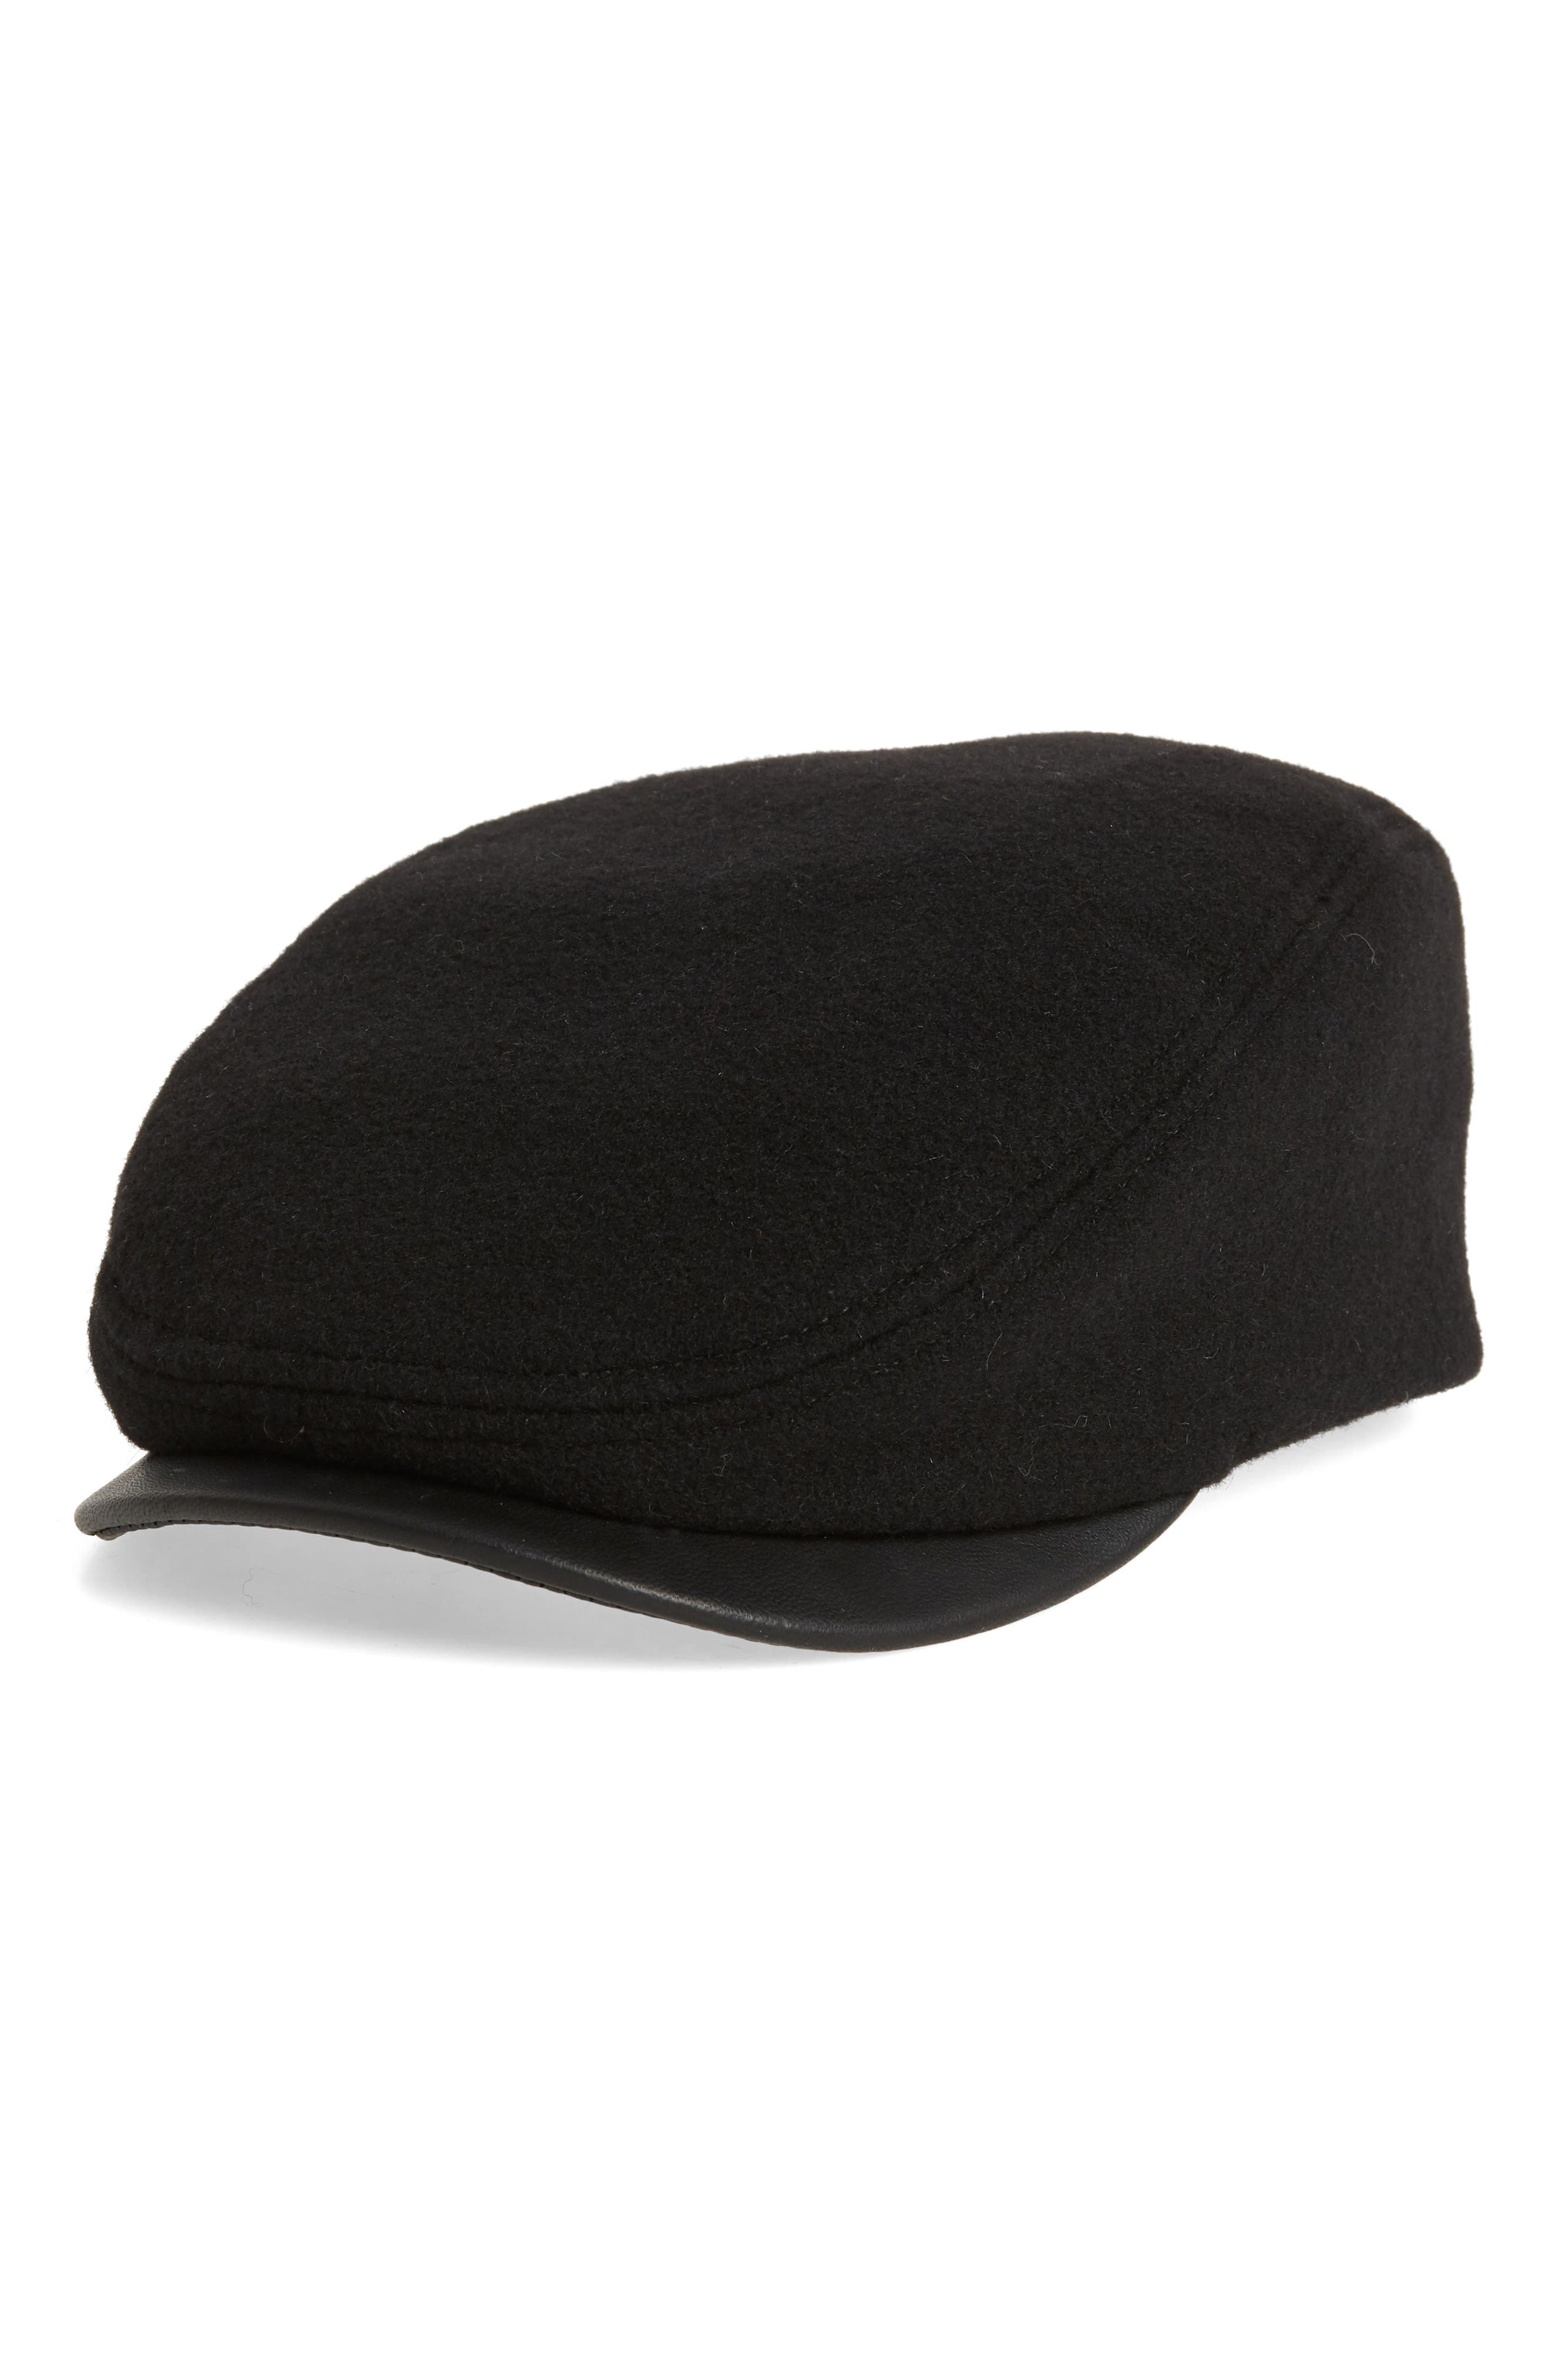 Melton Ivy Cap with Leather Visor,                         Main,                         color, 001